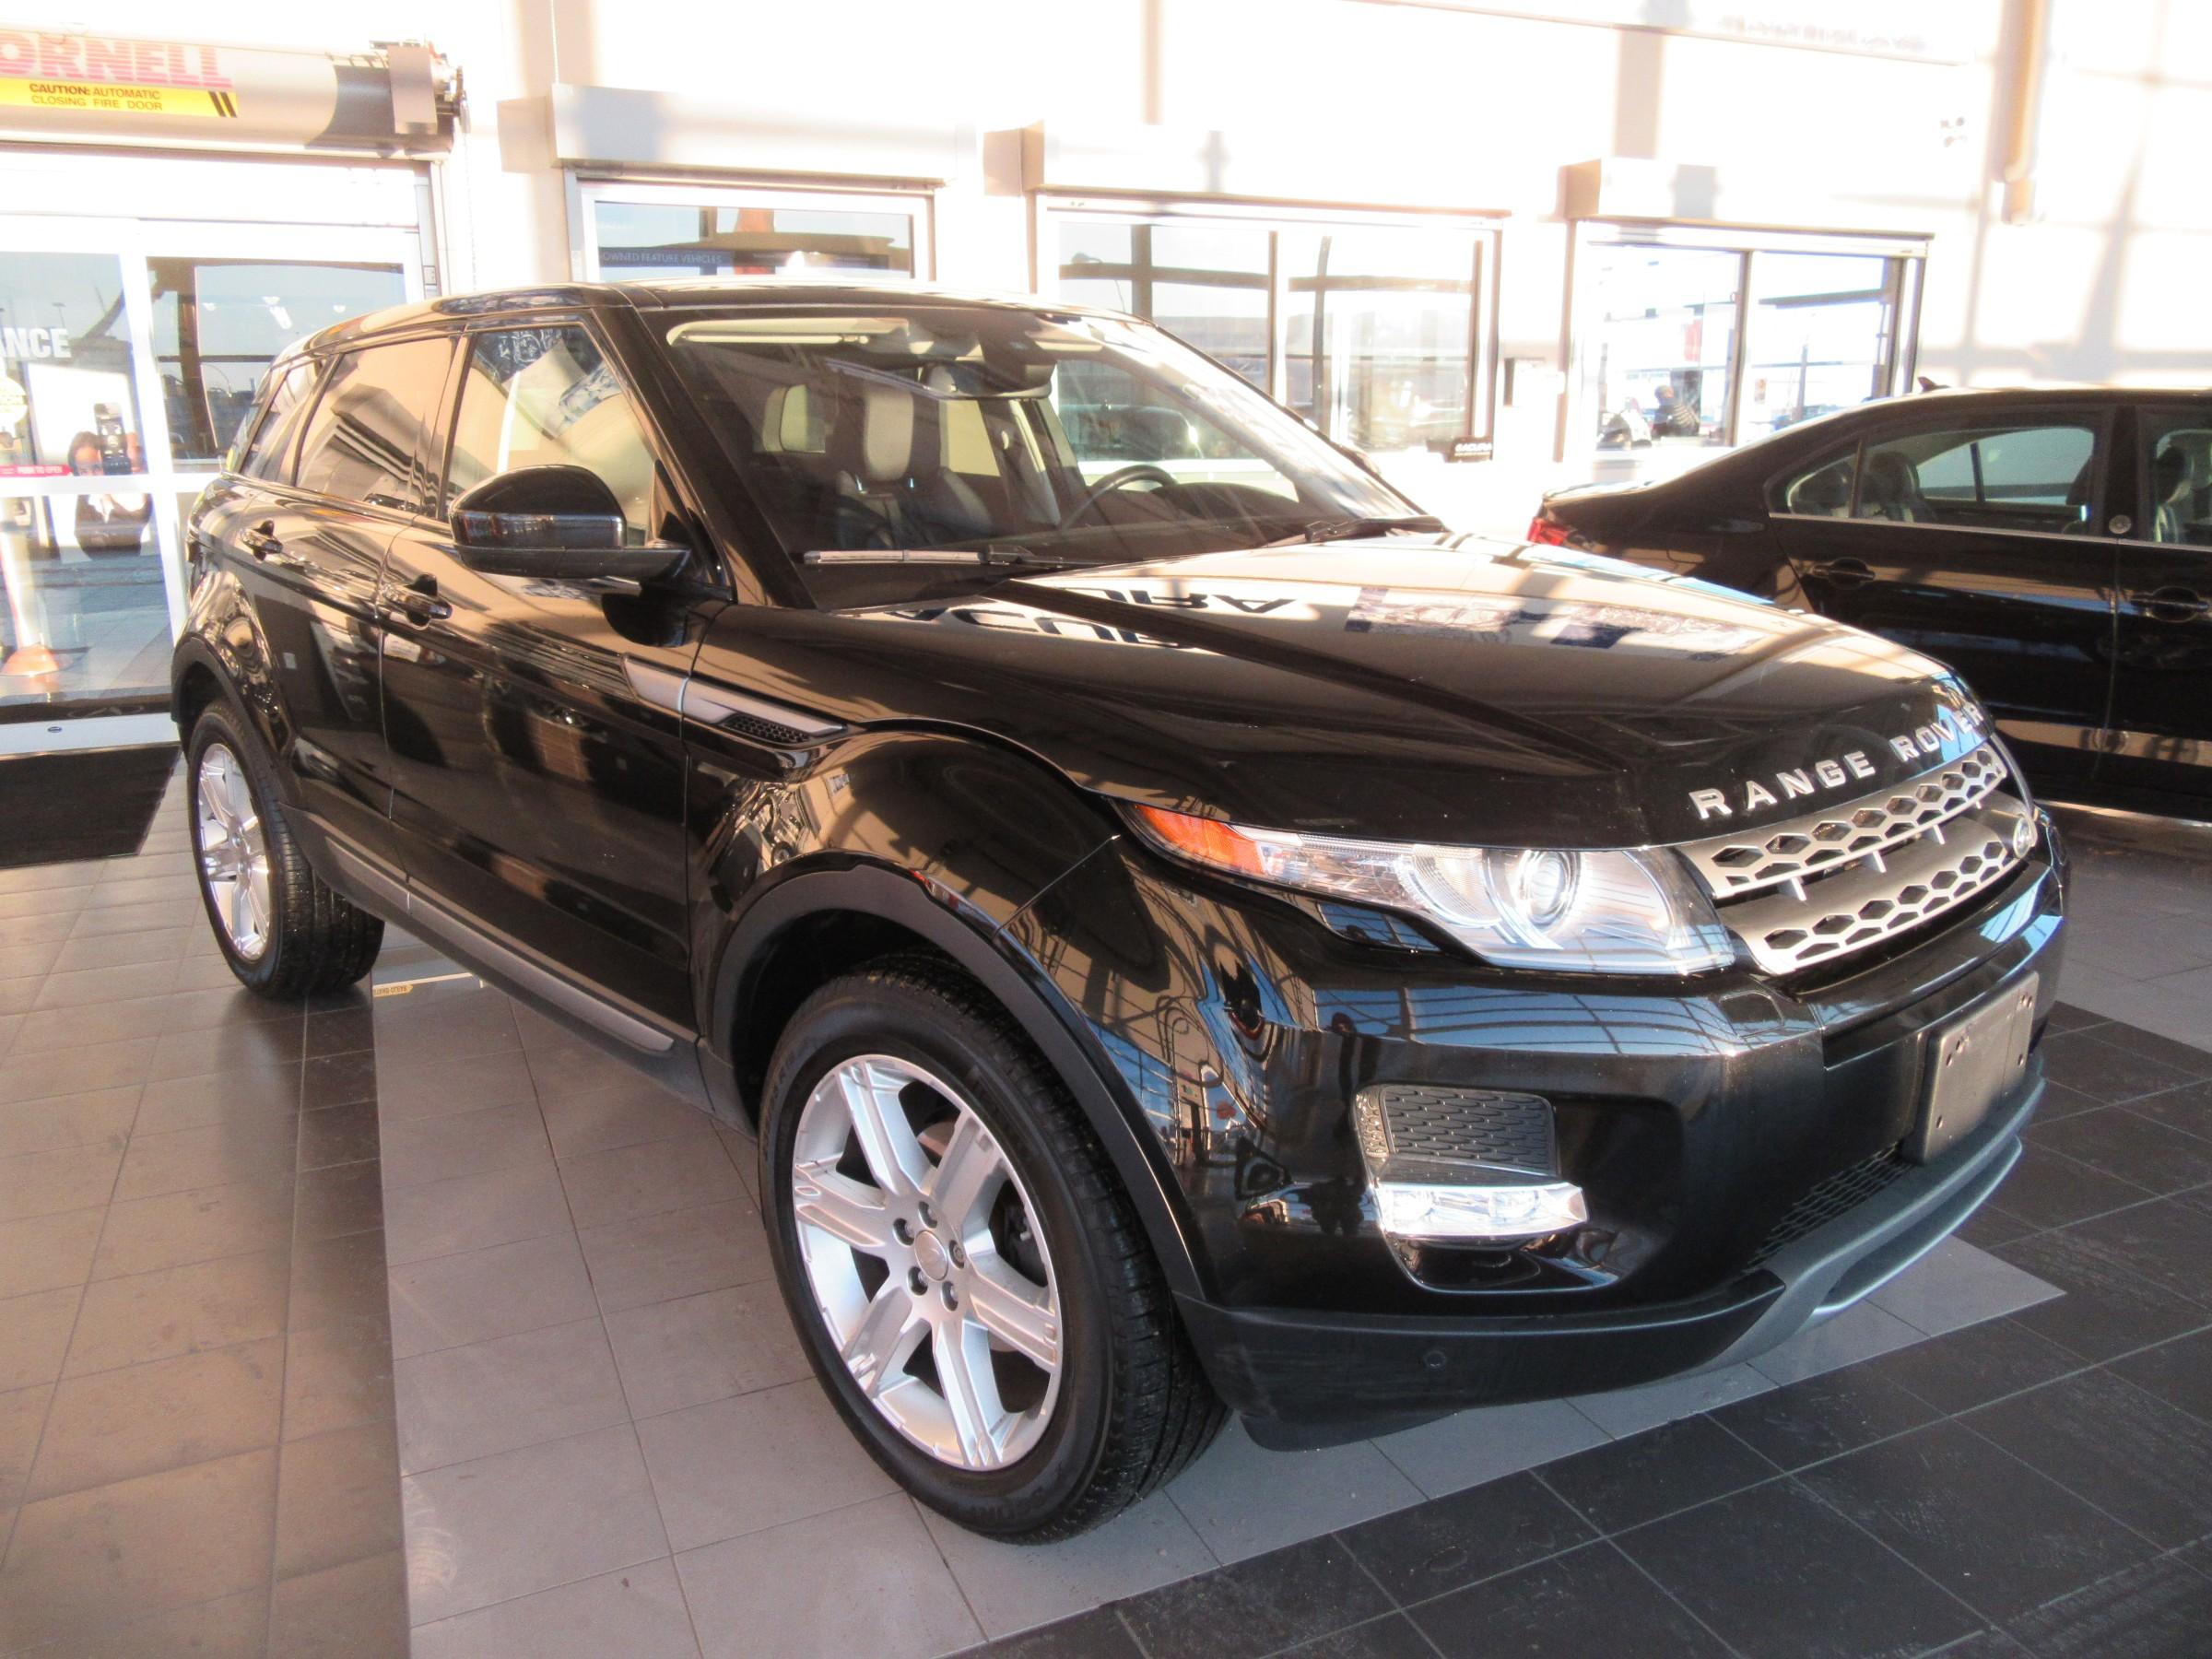 Used Land Rover Range Rover Evoque For Sale Saskatoon SK CarGurus